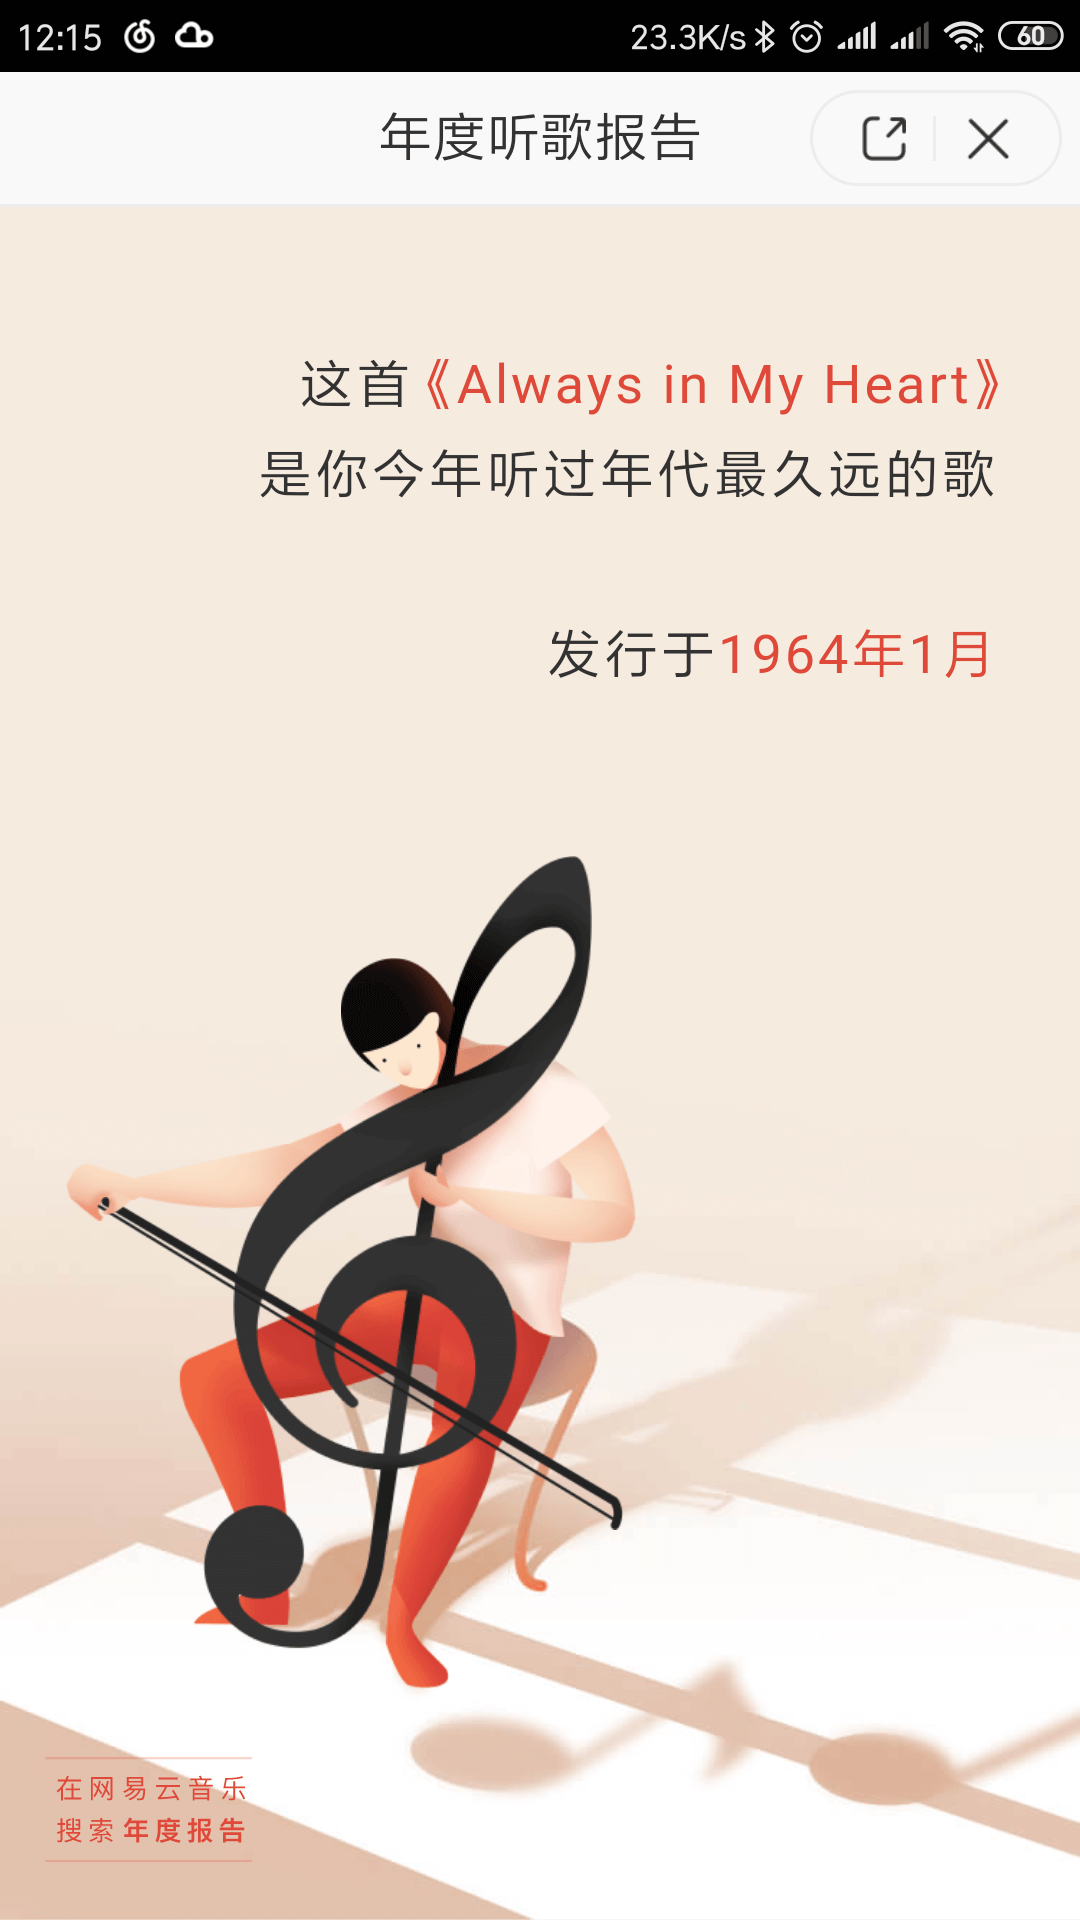 Screenshot_2019-01-04-12-15-47-401_com.netease.cloudmusic.png